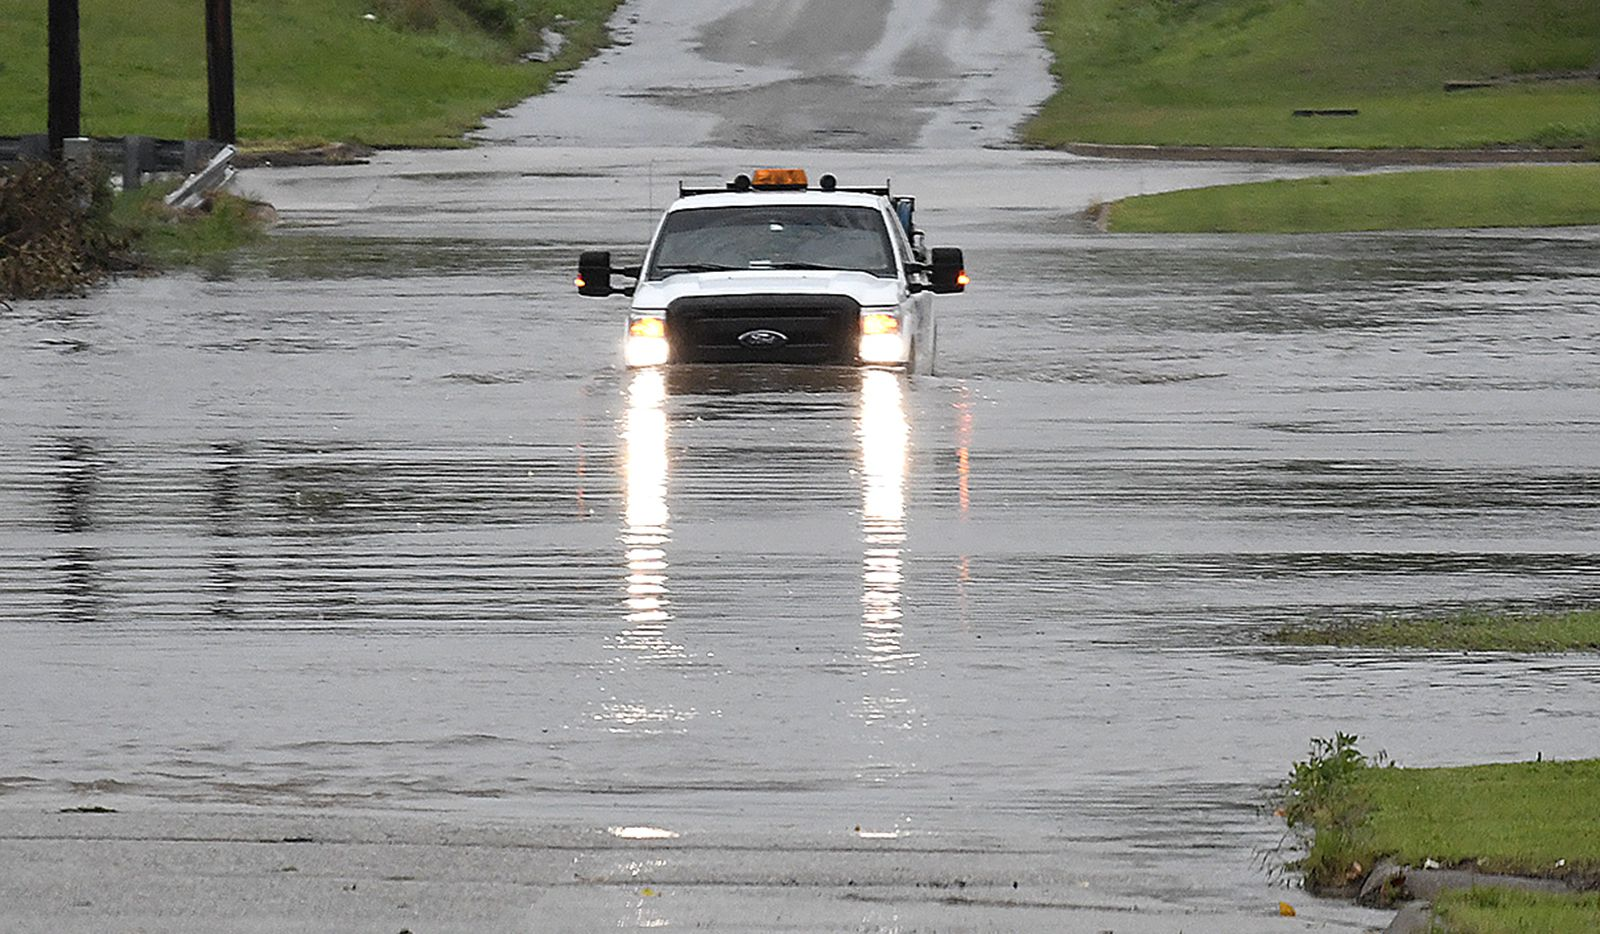 "A pickup drives on a flooded street in Enid, Okla., on Monday, May 20, 2019. An intense storm system that weather forecasters labeled ""particularly dangerous"" swept through the Southern Plains Monday, spawning a few tornadoes that caused some damage and a deluge of rain but no reports of injuries. (Billy Hefton/The Enid News & Eagle via AP)"